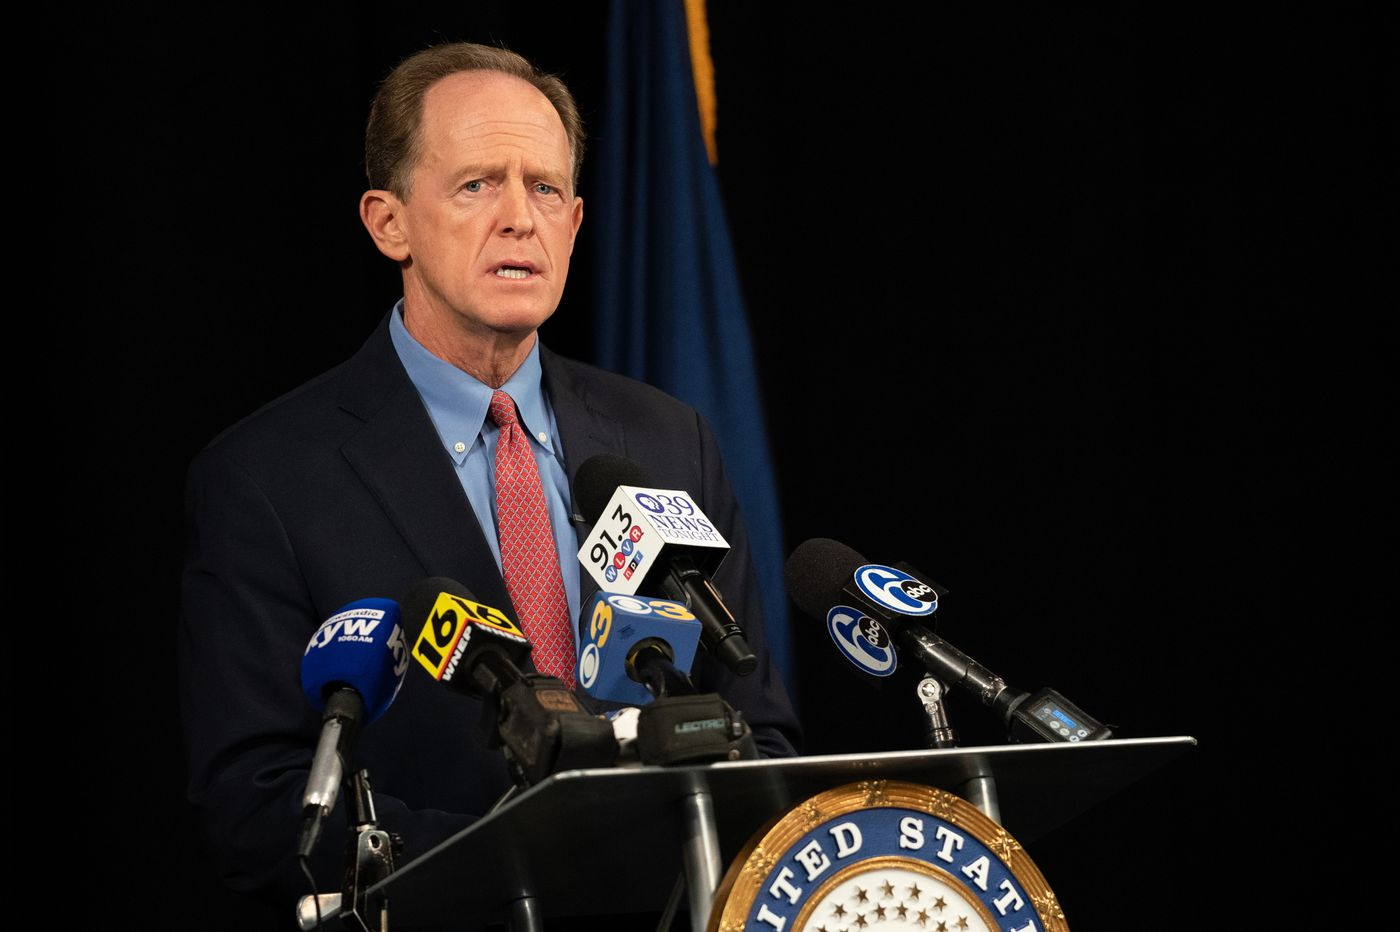 Pennsylvania Sen. Pat Toomey is at the center of a last-minute dispute over Congress' coronavirus relief bill